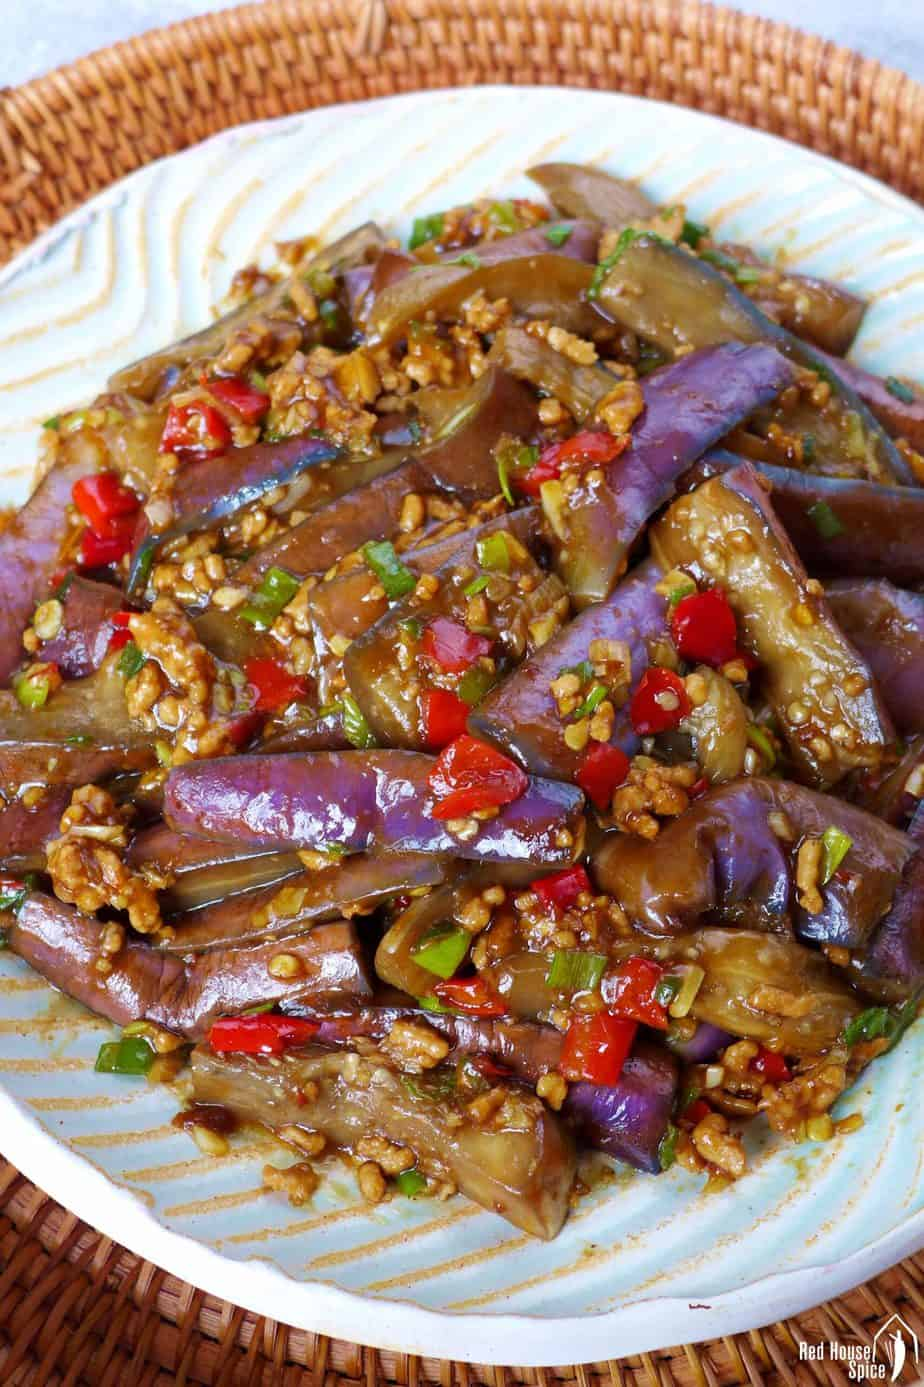 A plate of stir-fried eggplant with garlic sauce